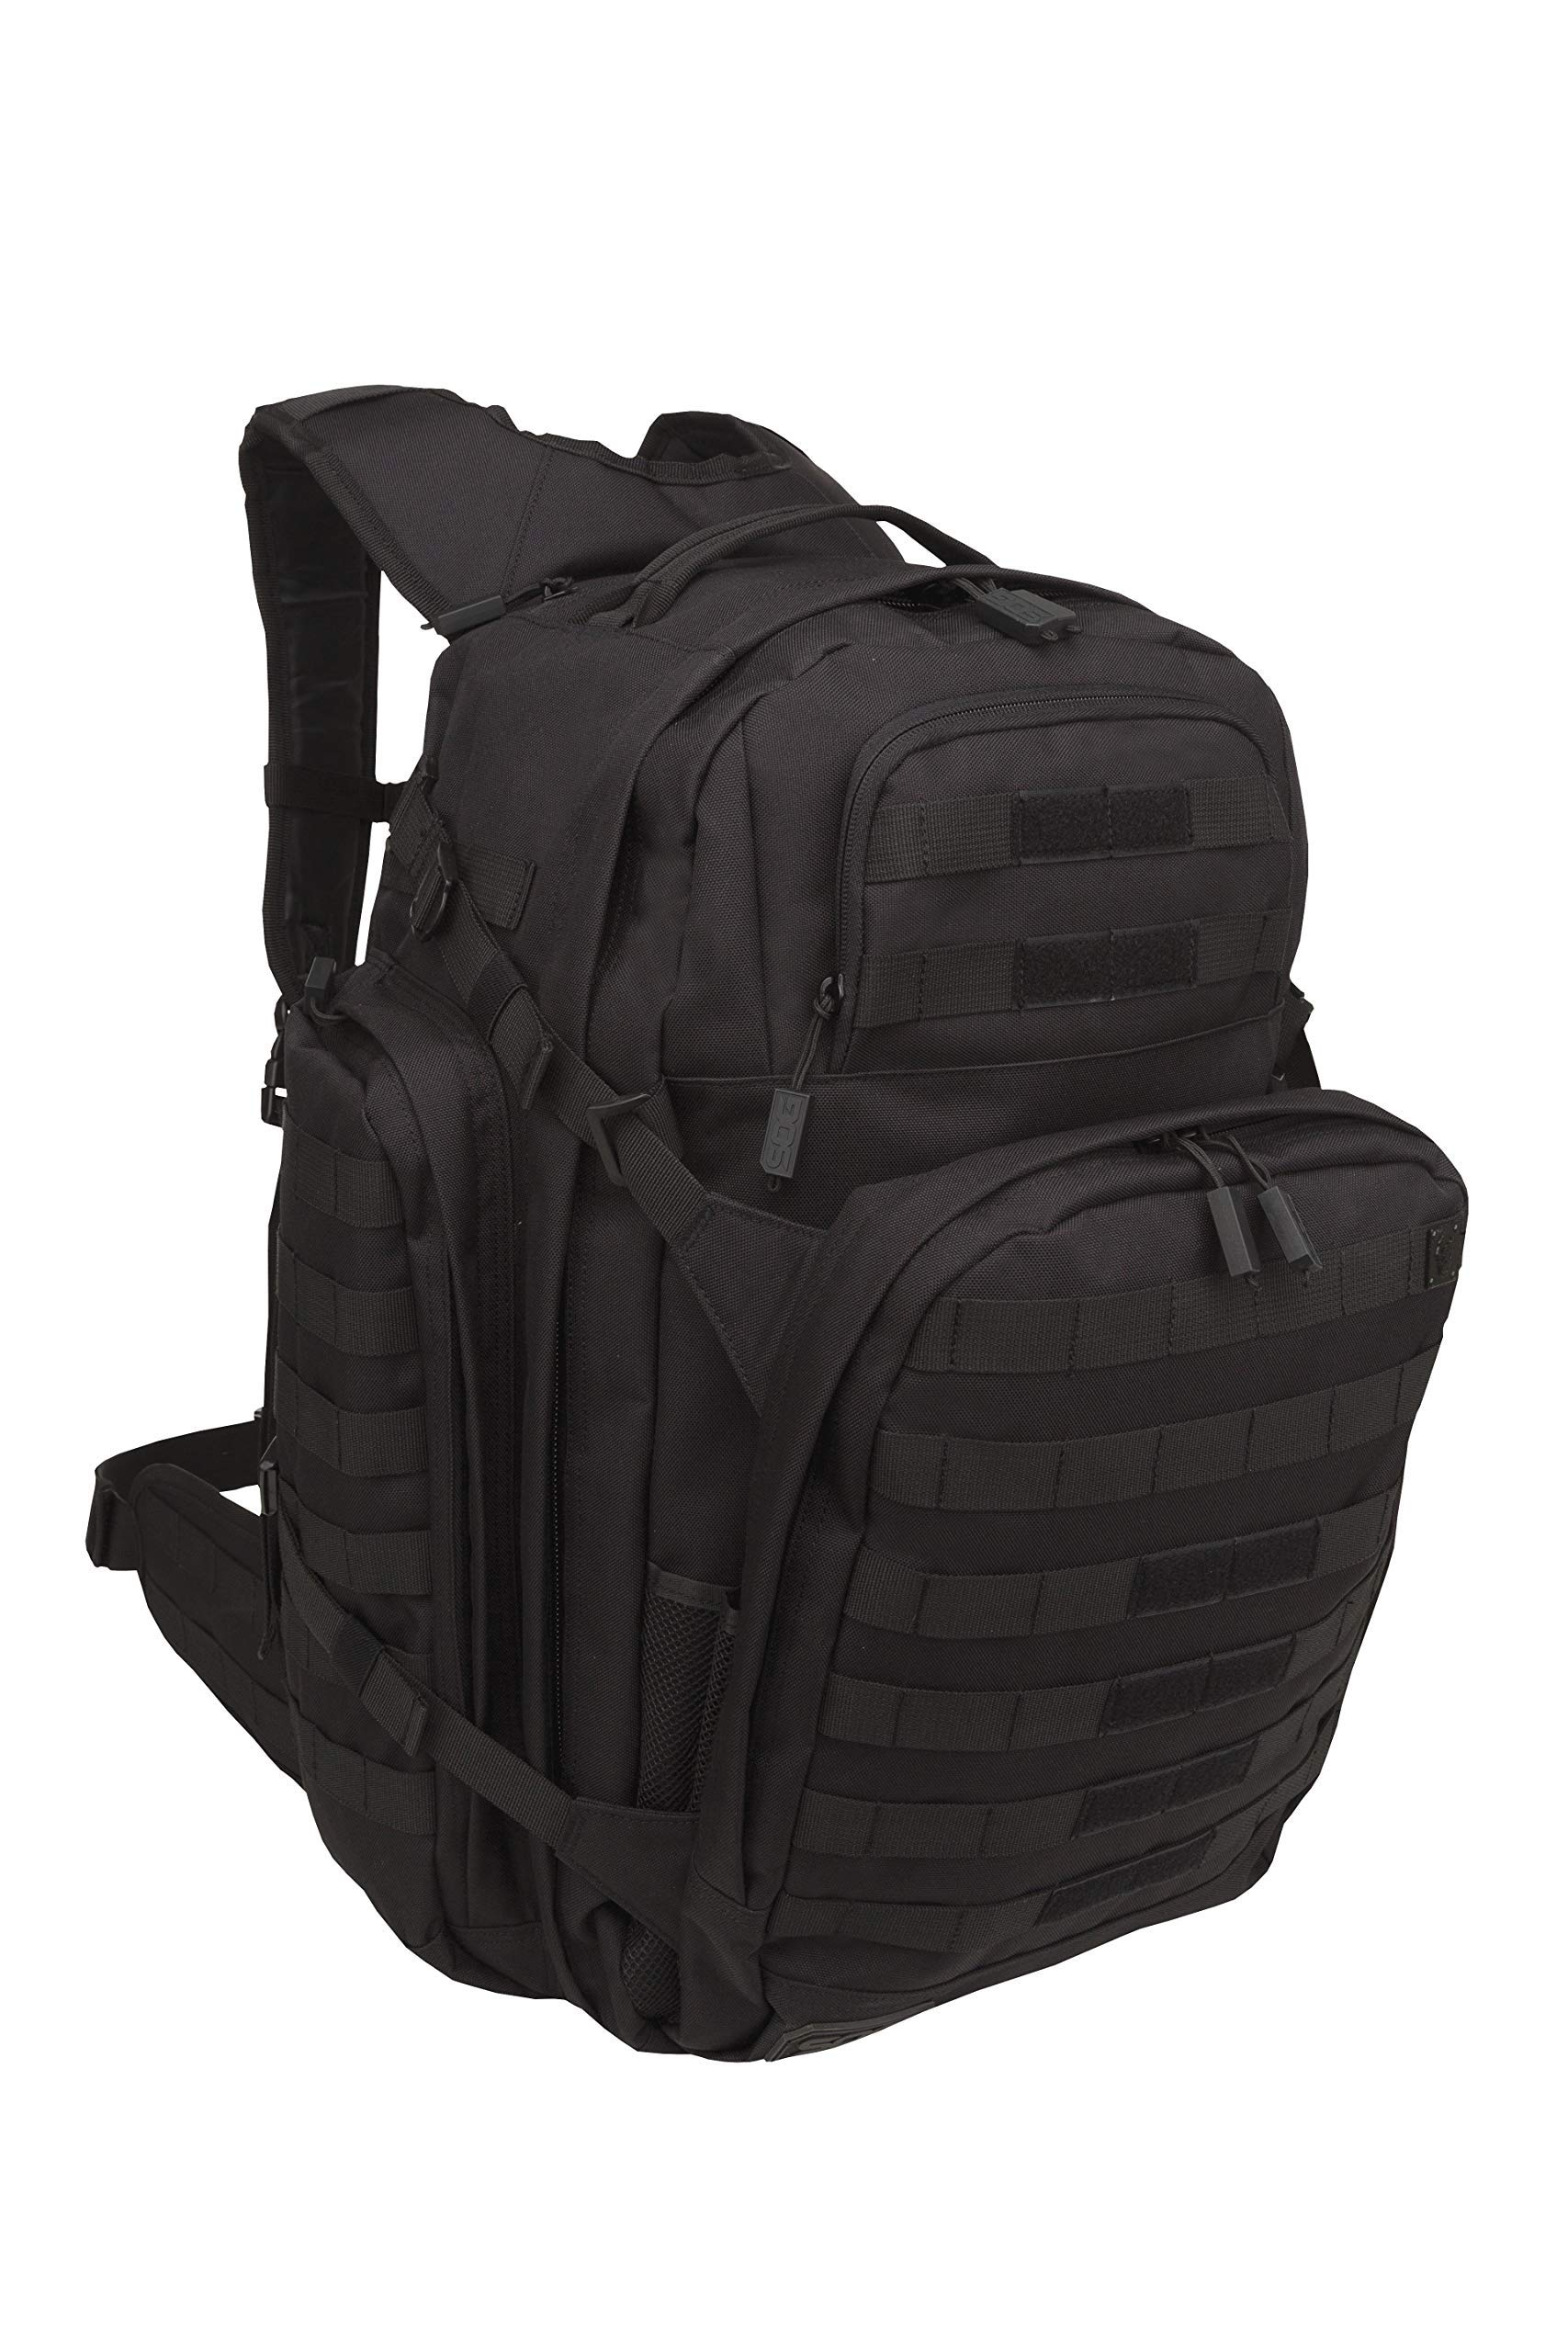 SOG Barrage Tactical Internal Frame Backpack, 64.3-Liter Storage, Black by SOG